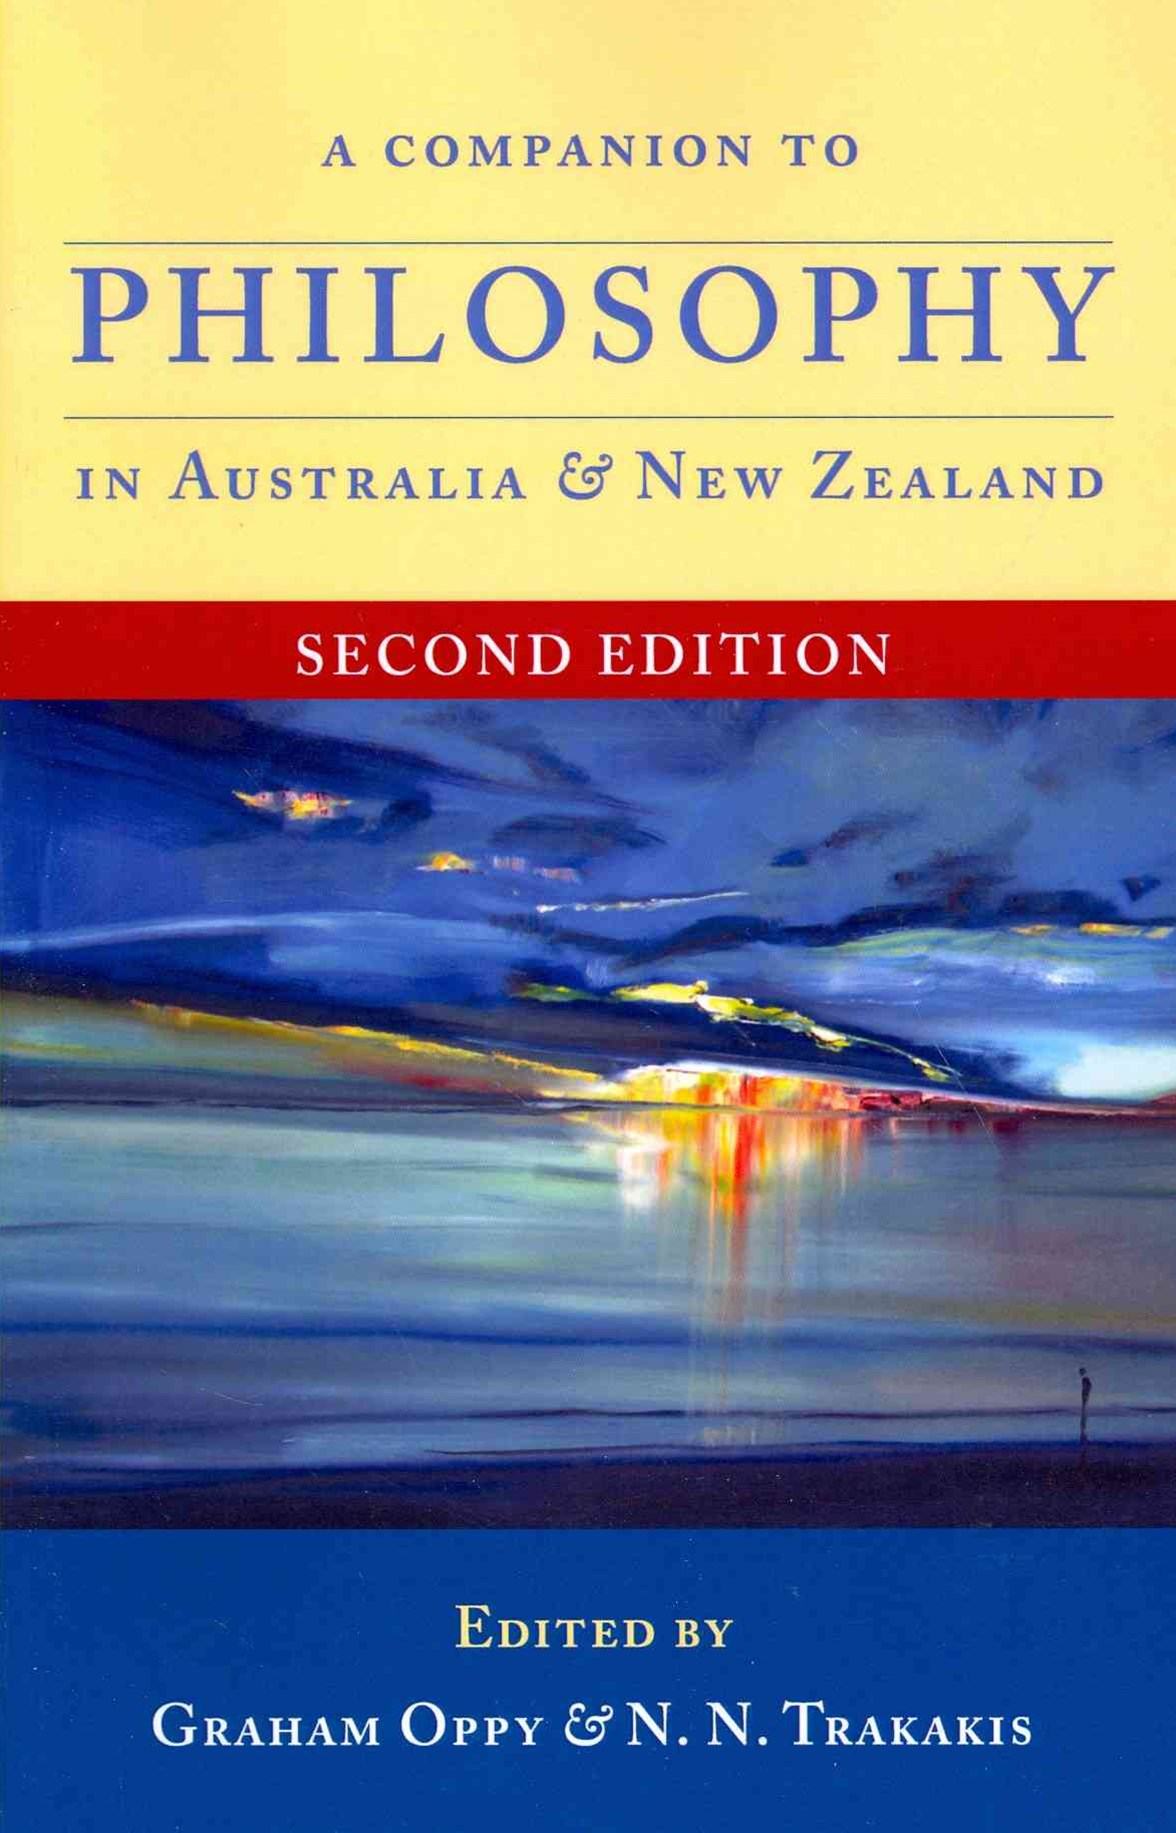 Companion to Philosophy in Australia and New Zealand